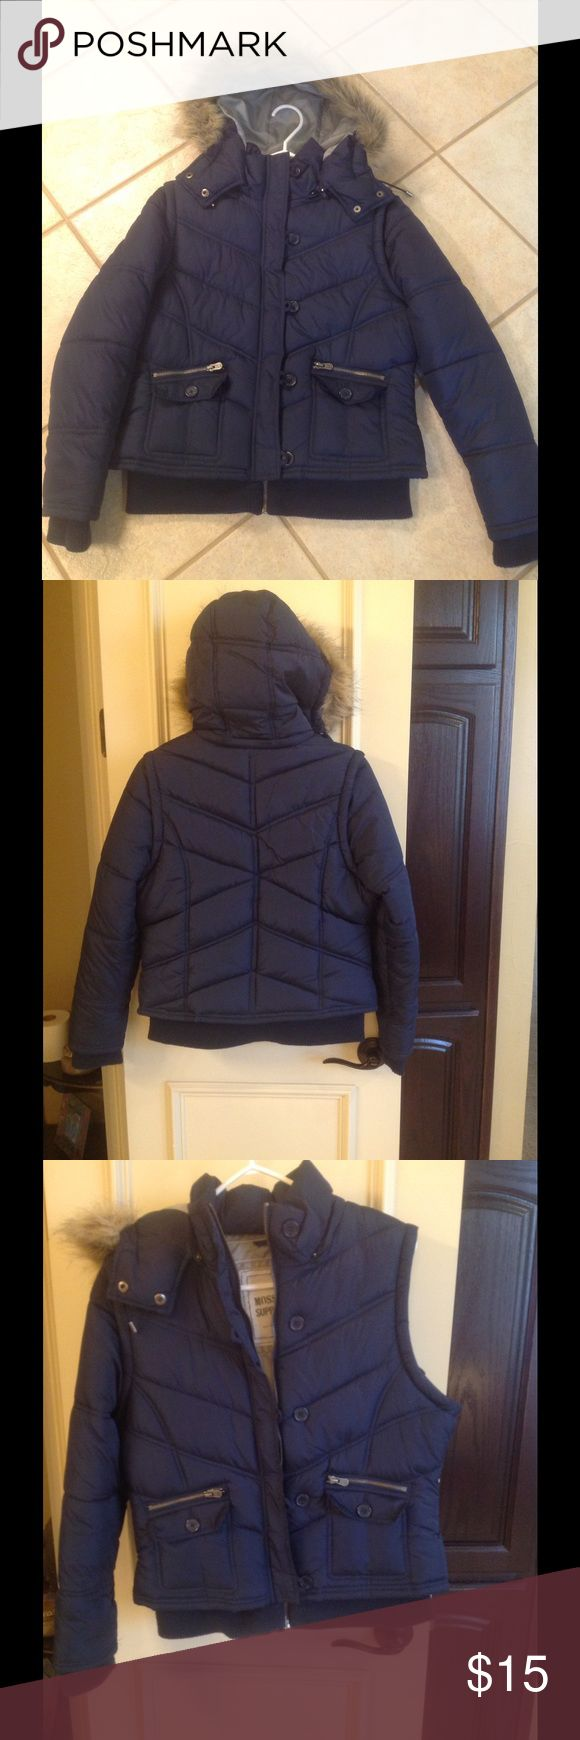 Puff jacket- down-like winter coat Navy parka bomber style winter jacket from Target. Hood and sleeves are removable for just a cool vest! Youth large/Adult Small last call before charity Mossimo Supply Co. Jackets & Coats Puffers